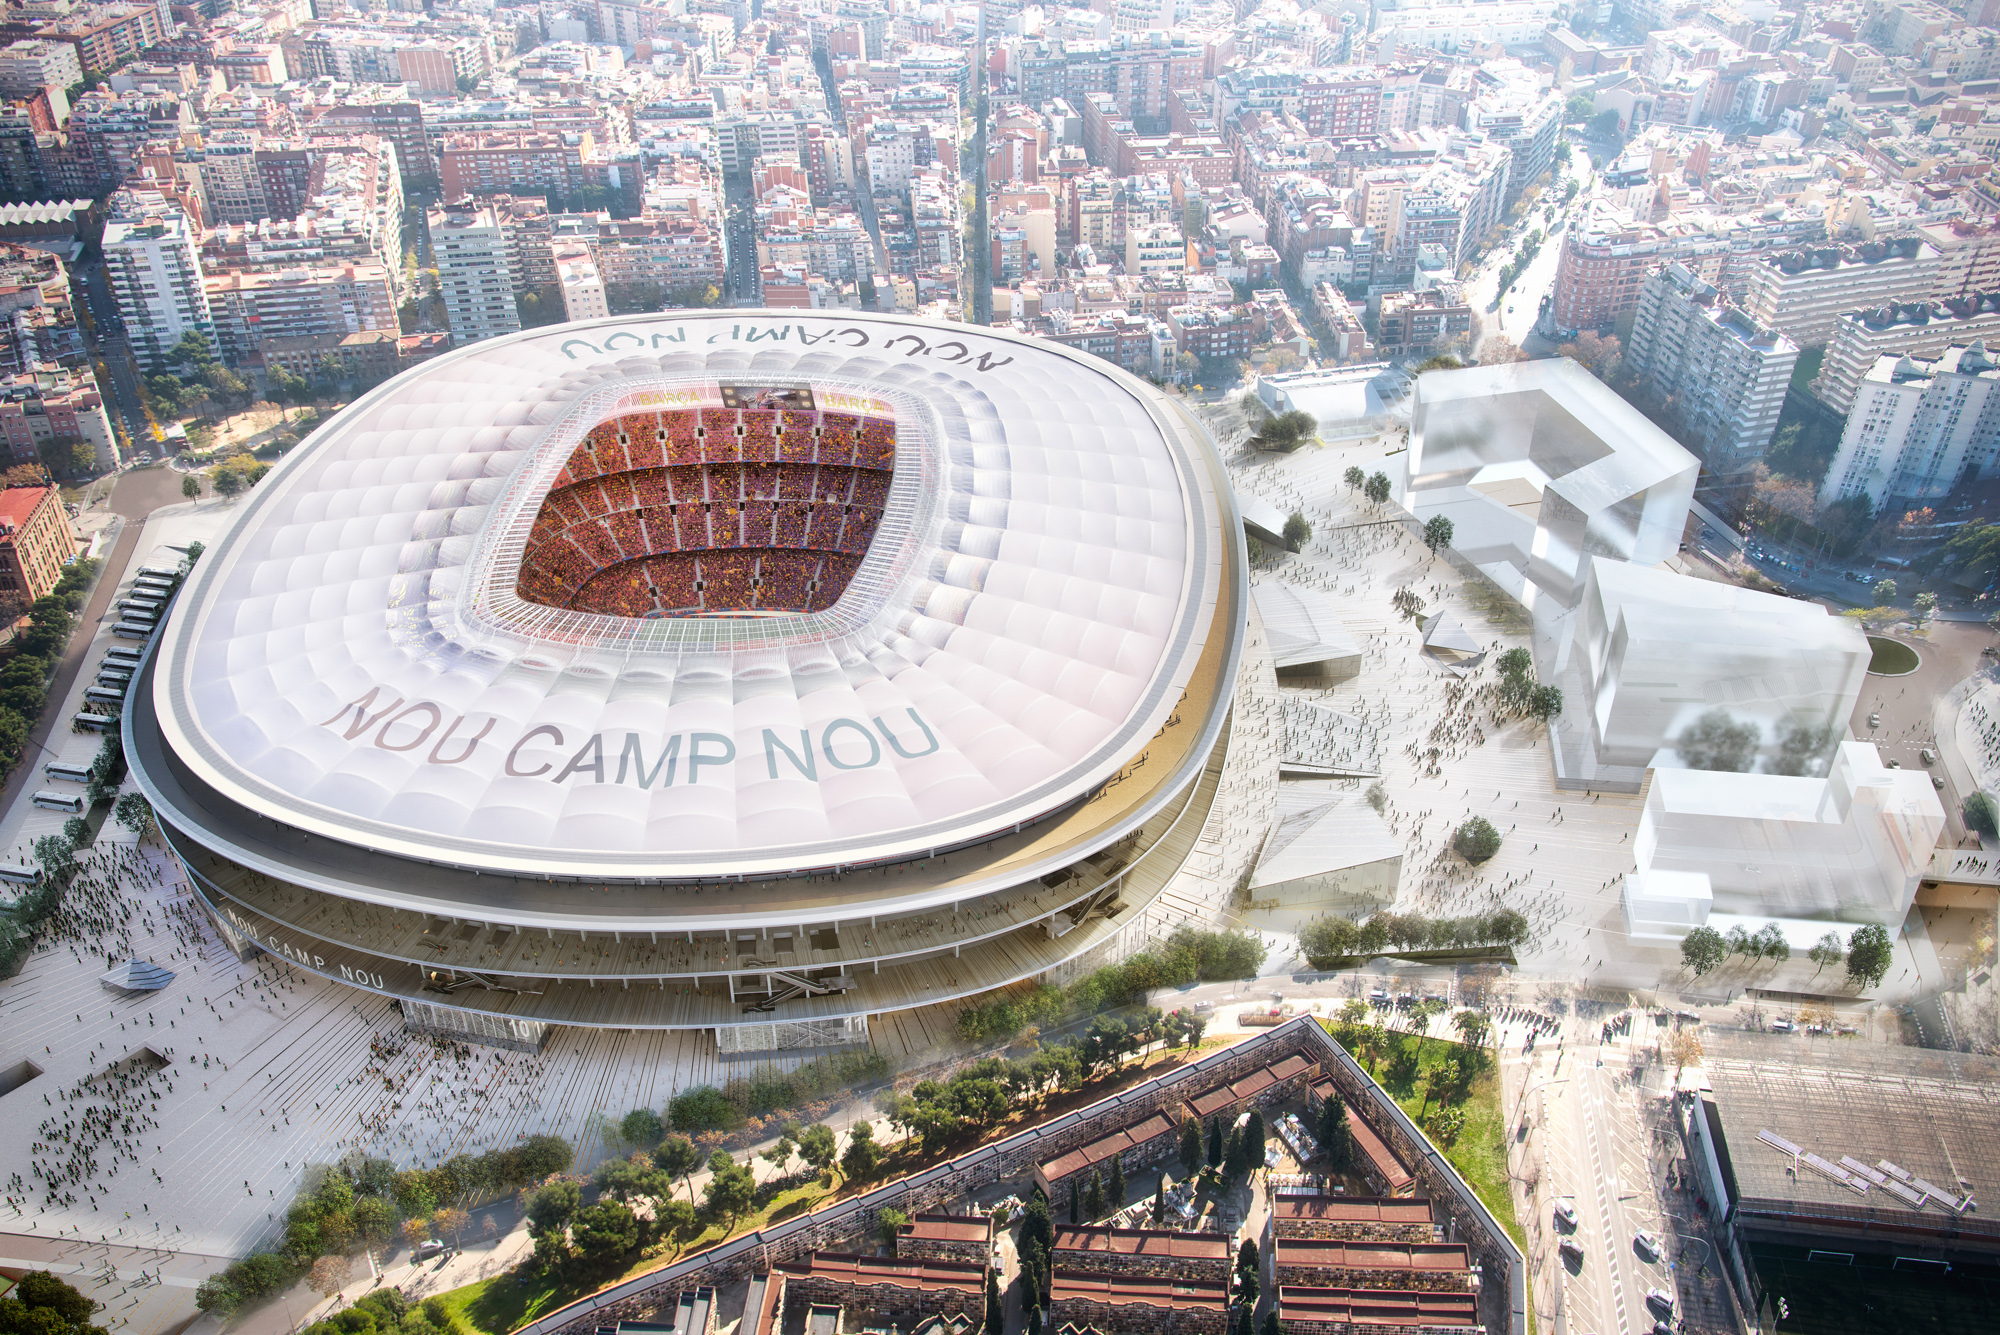 fc barcelona unveil images for new expanded camp nou stadium expanded camp nou stadium